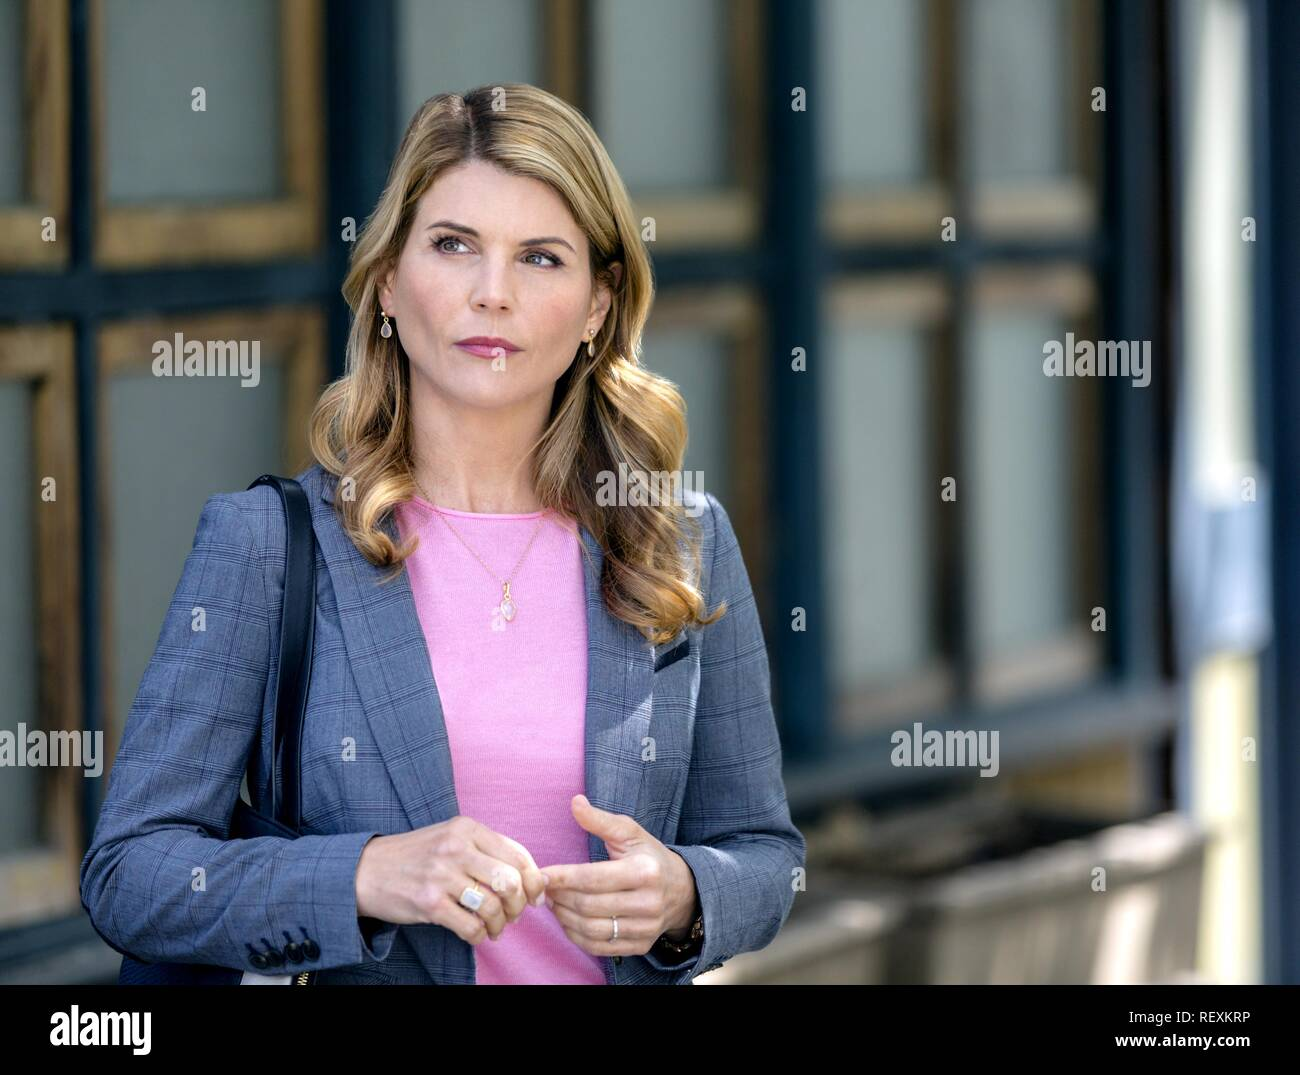 Garage Sale Mystery The Beach lori loughlin where stock photos & lori loughlin where stock